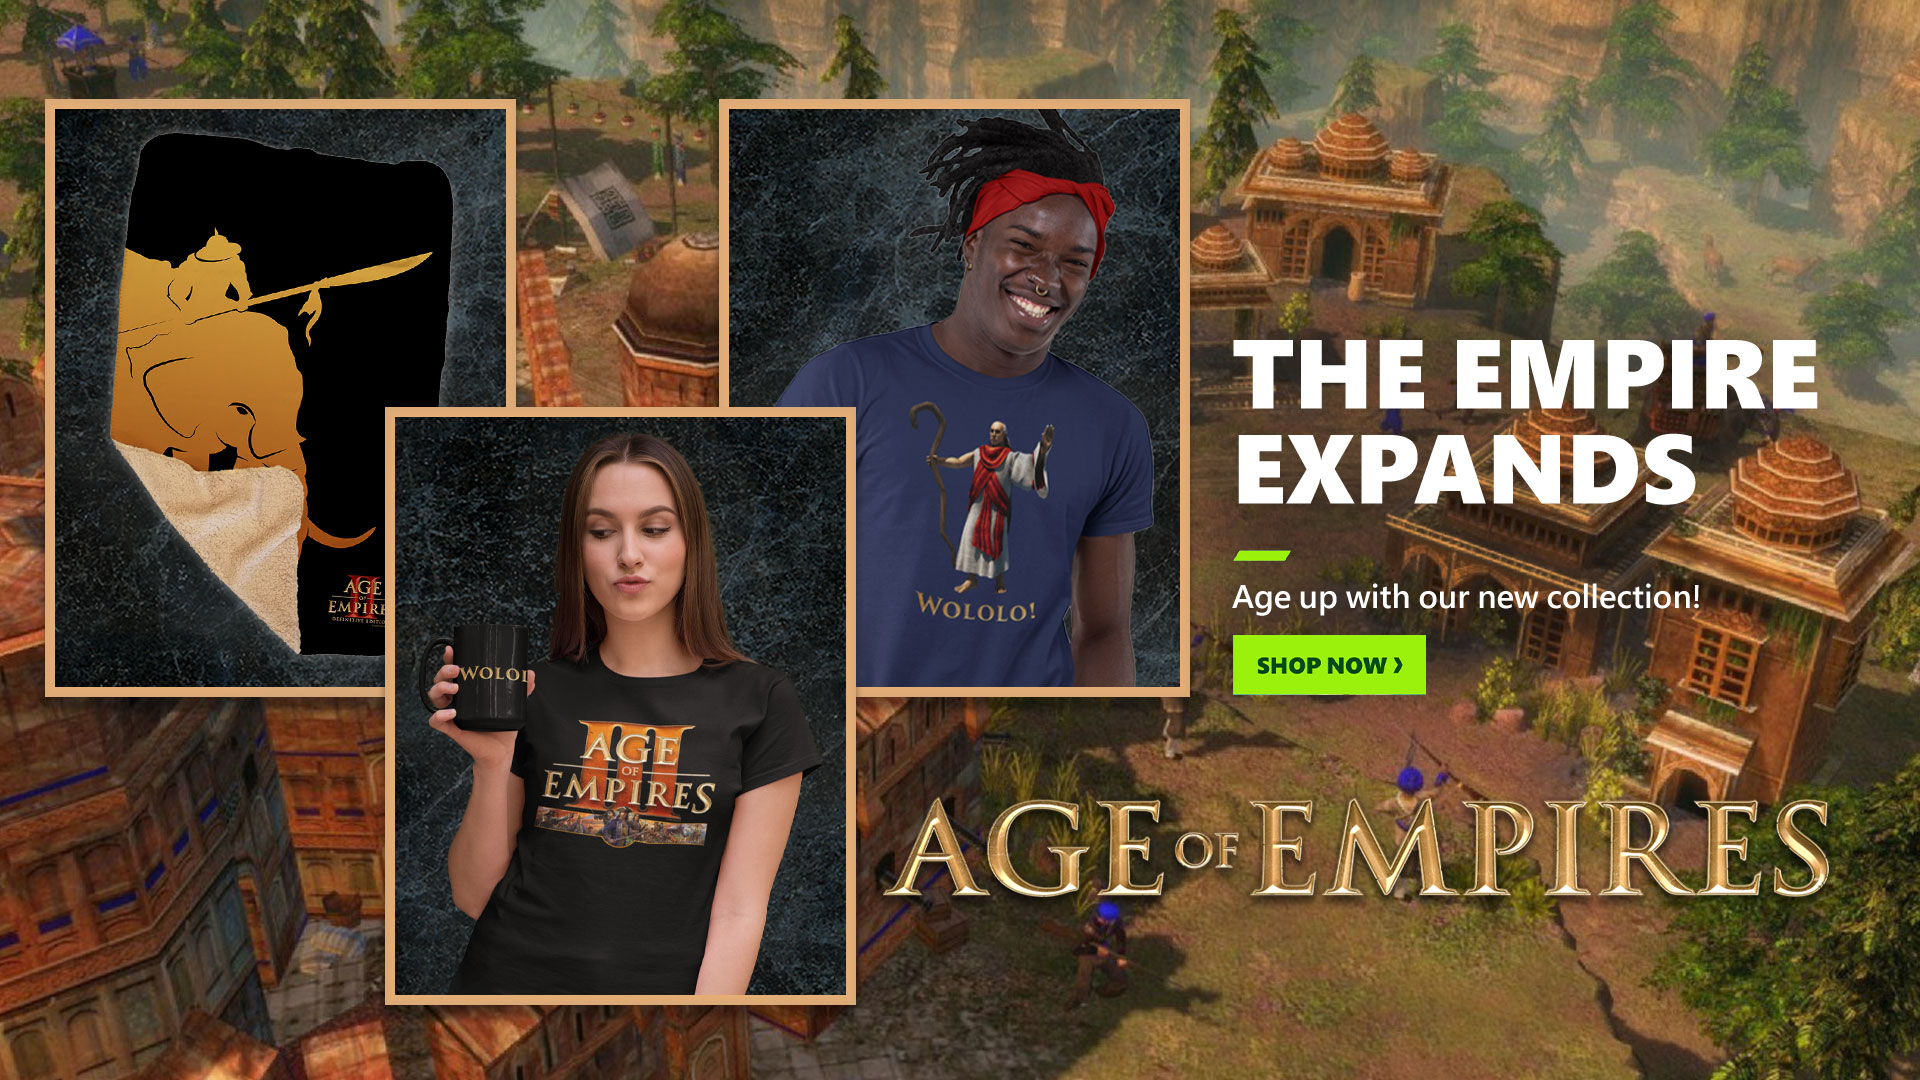 Promotional image showing items available in the Age of Empires Gear Store